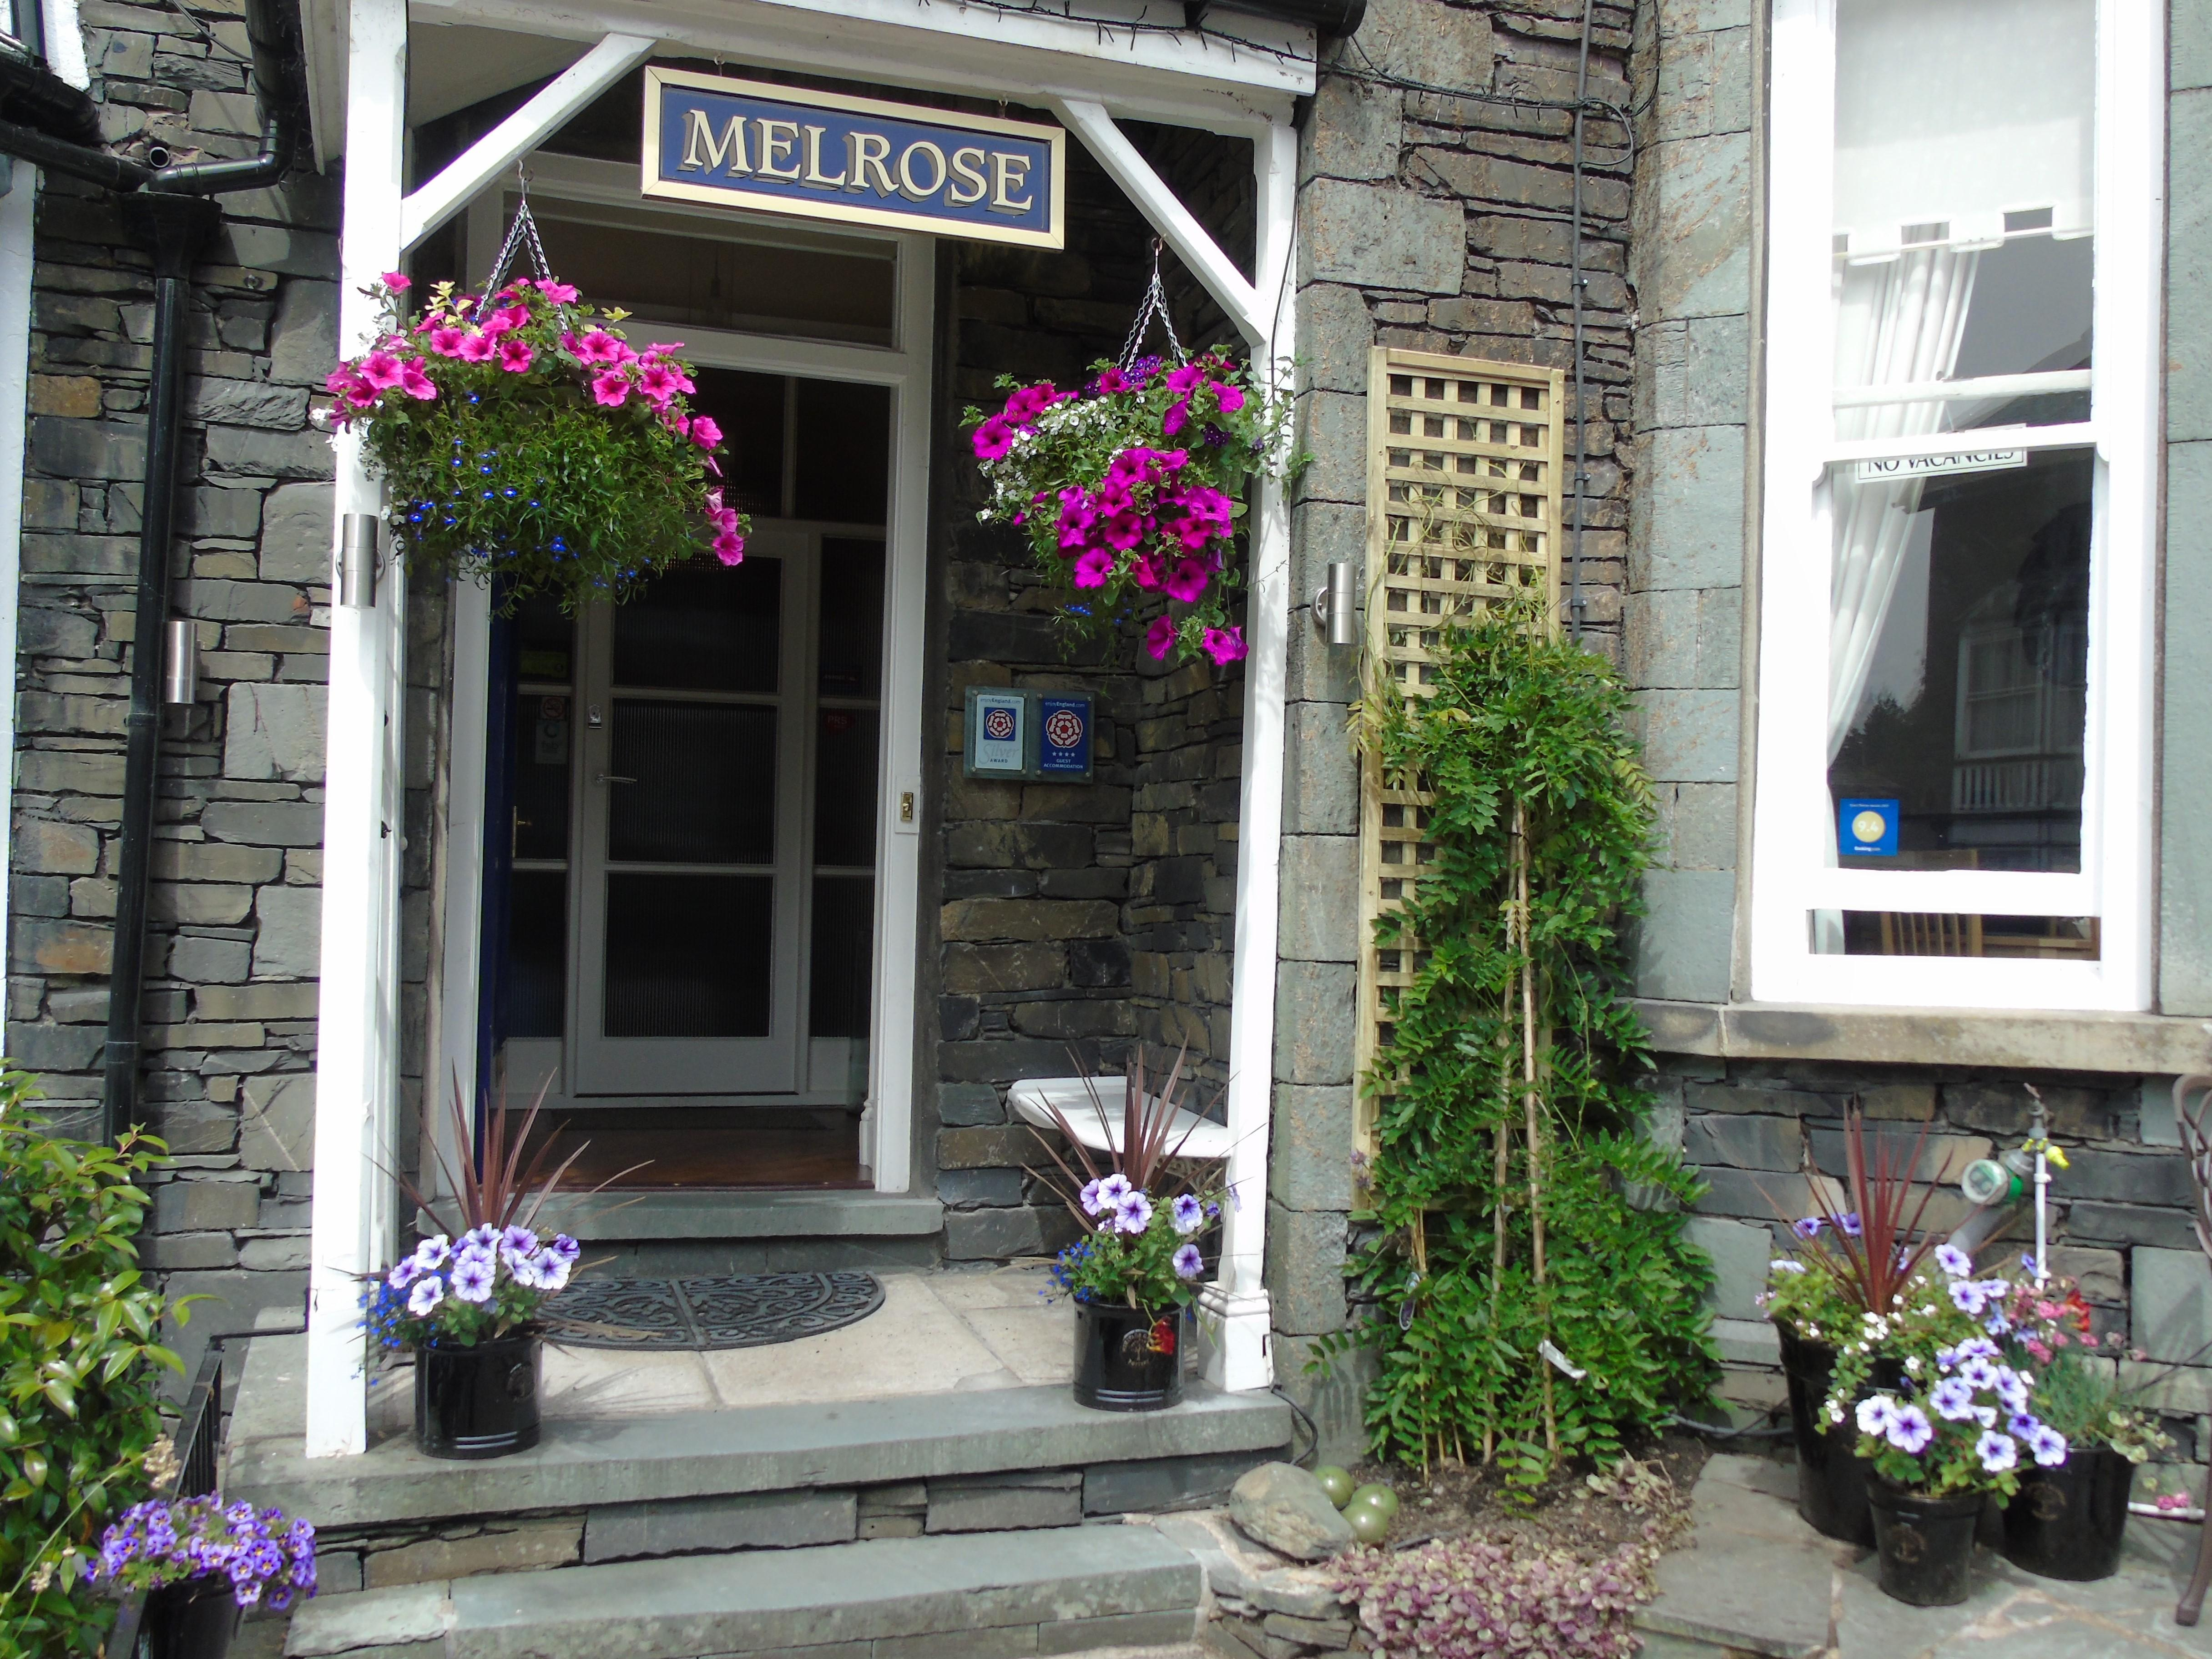 Melrose Guest House in The Lakes